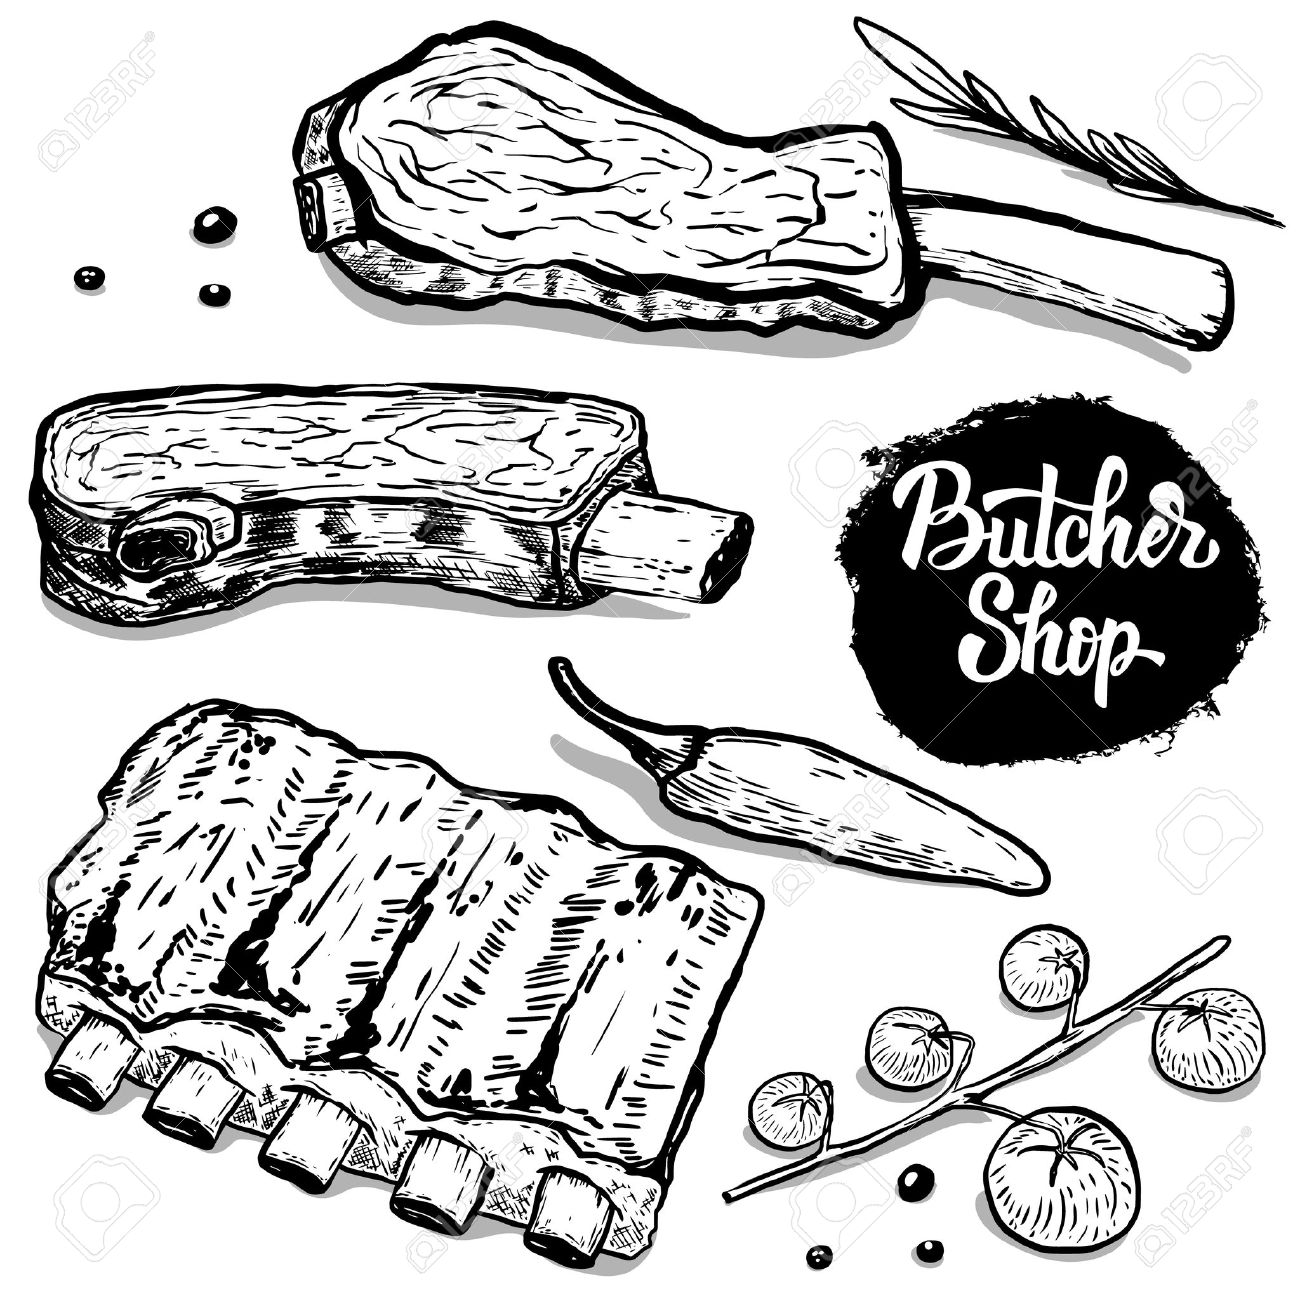 Butcher shop. set of hand drawn beef ribs with spices. Design elements for poster, menu, flyer. Vector illustration - 76546782